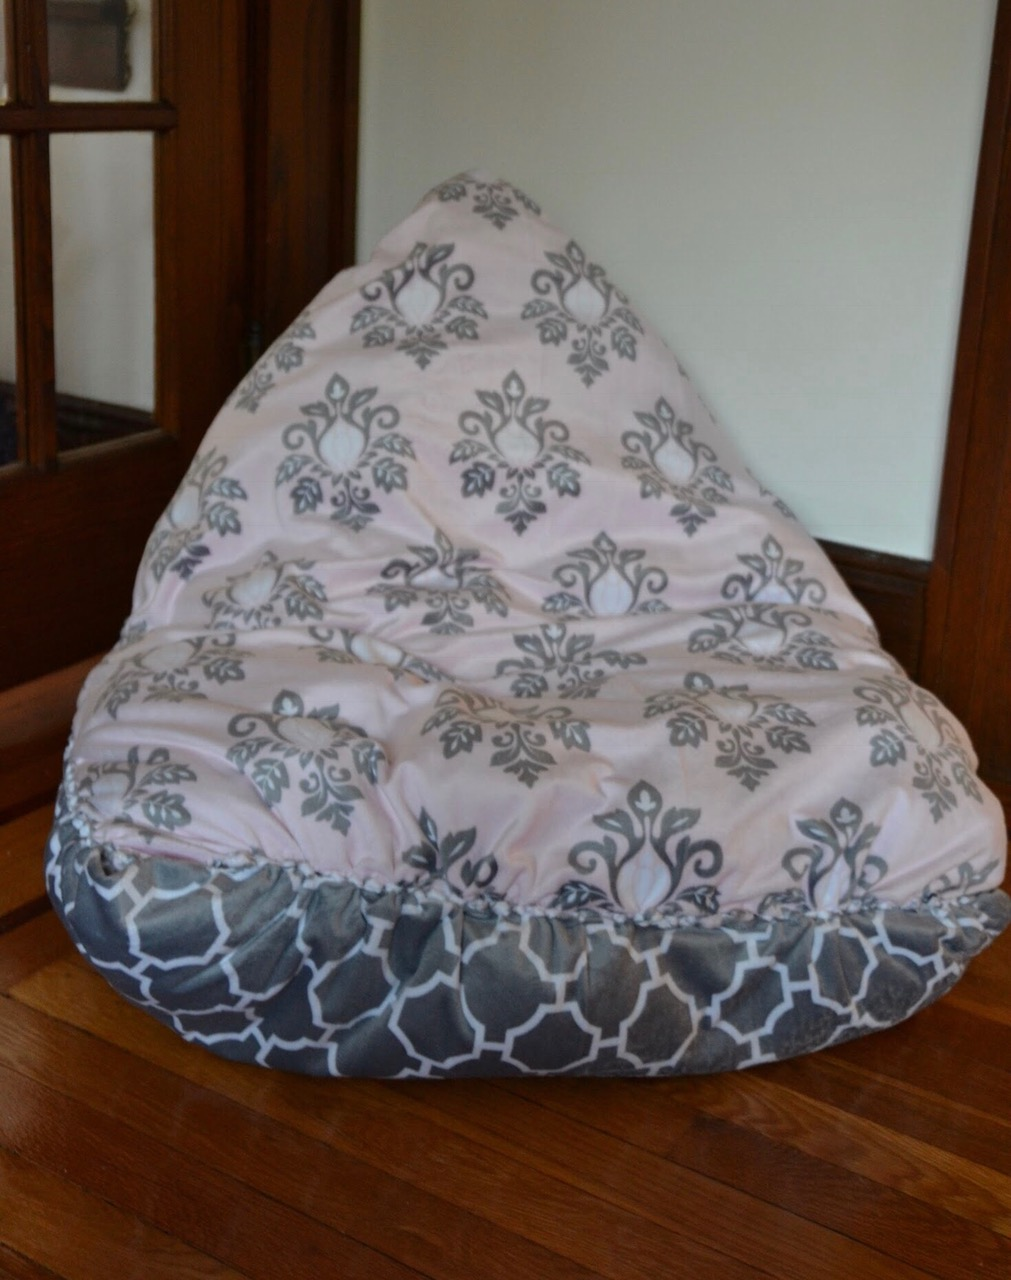 This NoSew DIY Bean Bag Chair Is A Snap To Make